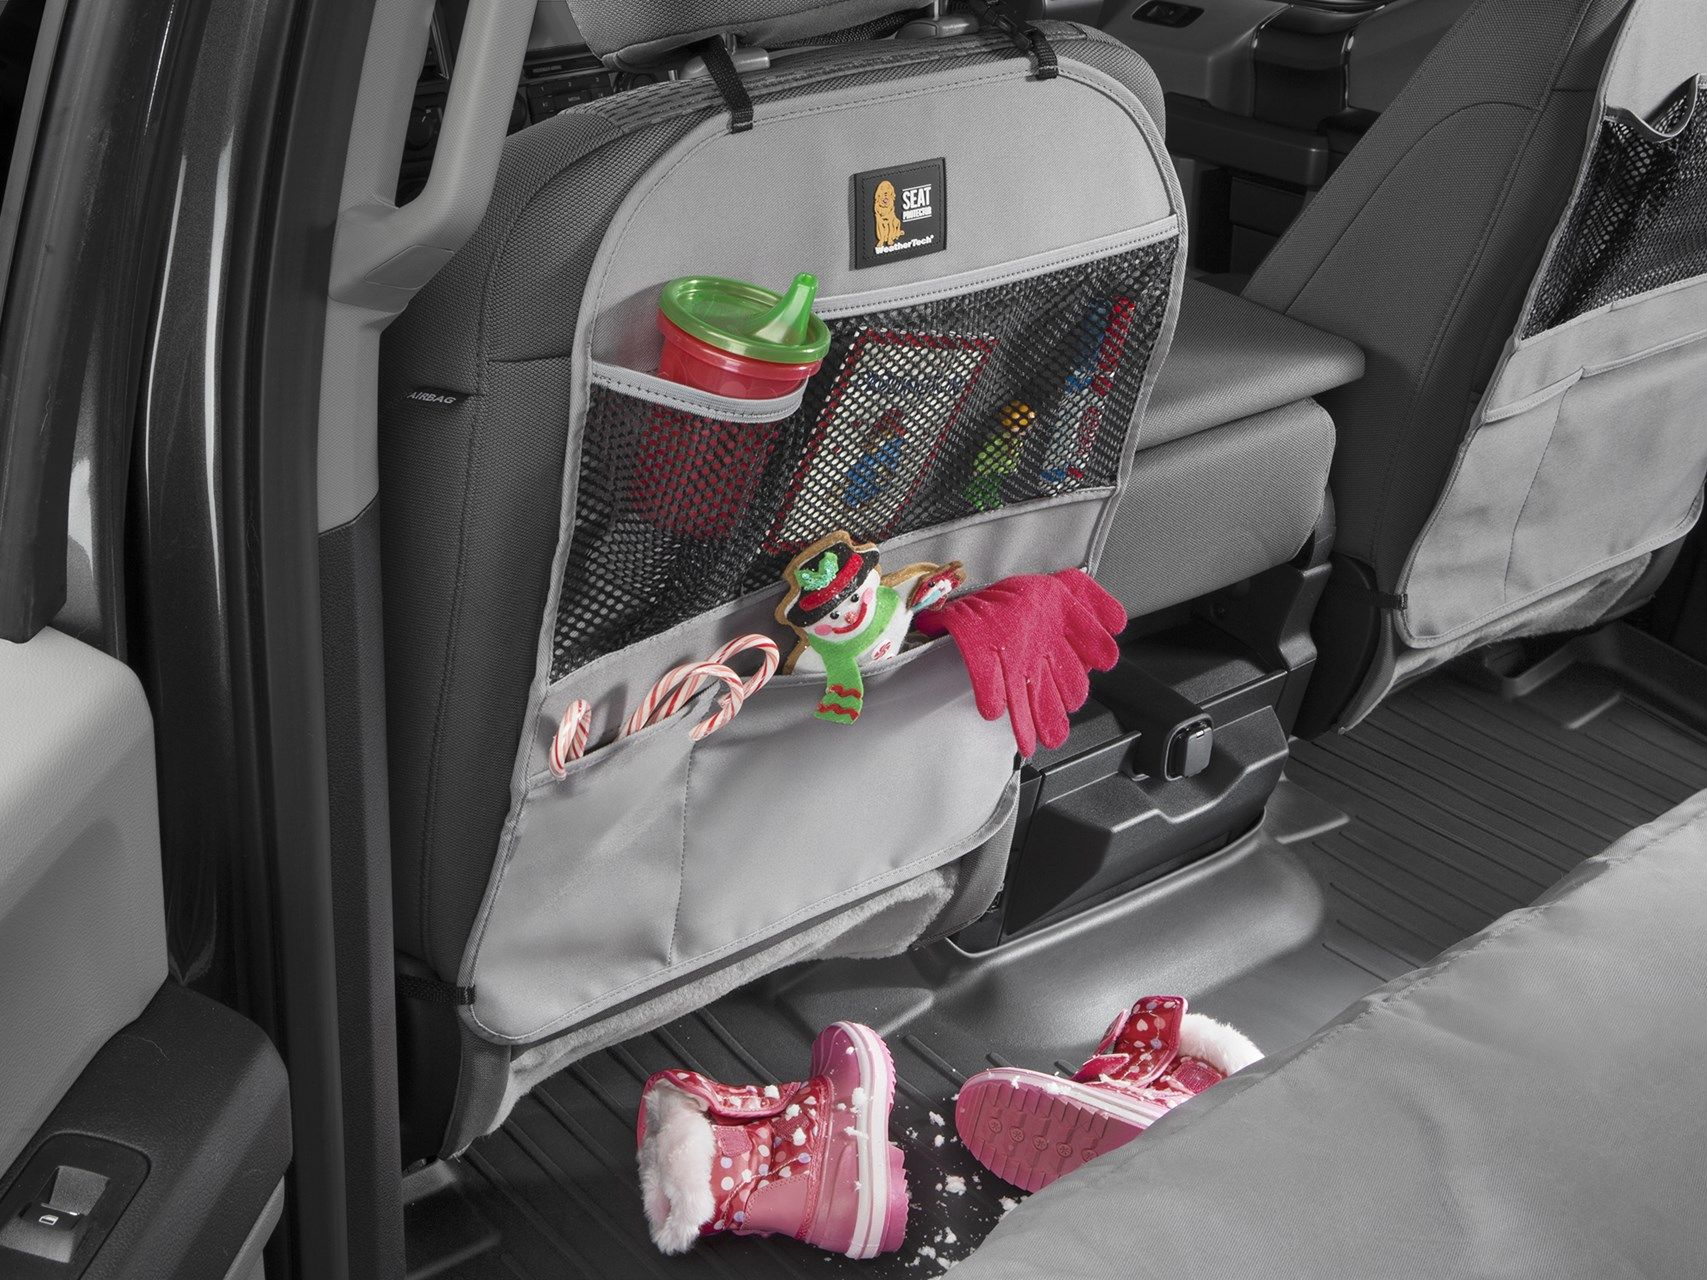 Kick Mat and Organizer for The Back of Your Seat Grey WeatherTech Seat Back Protector